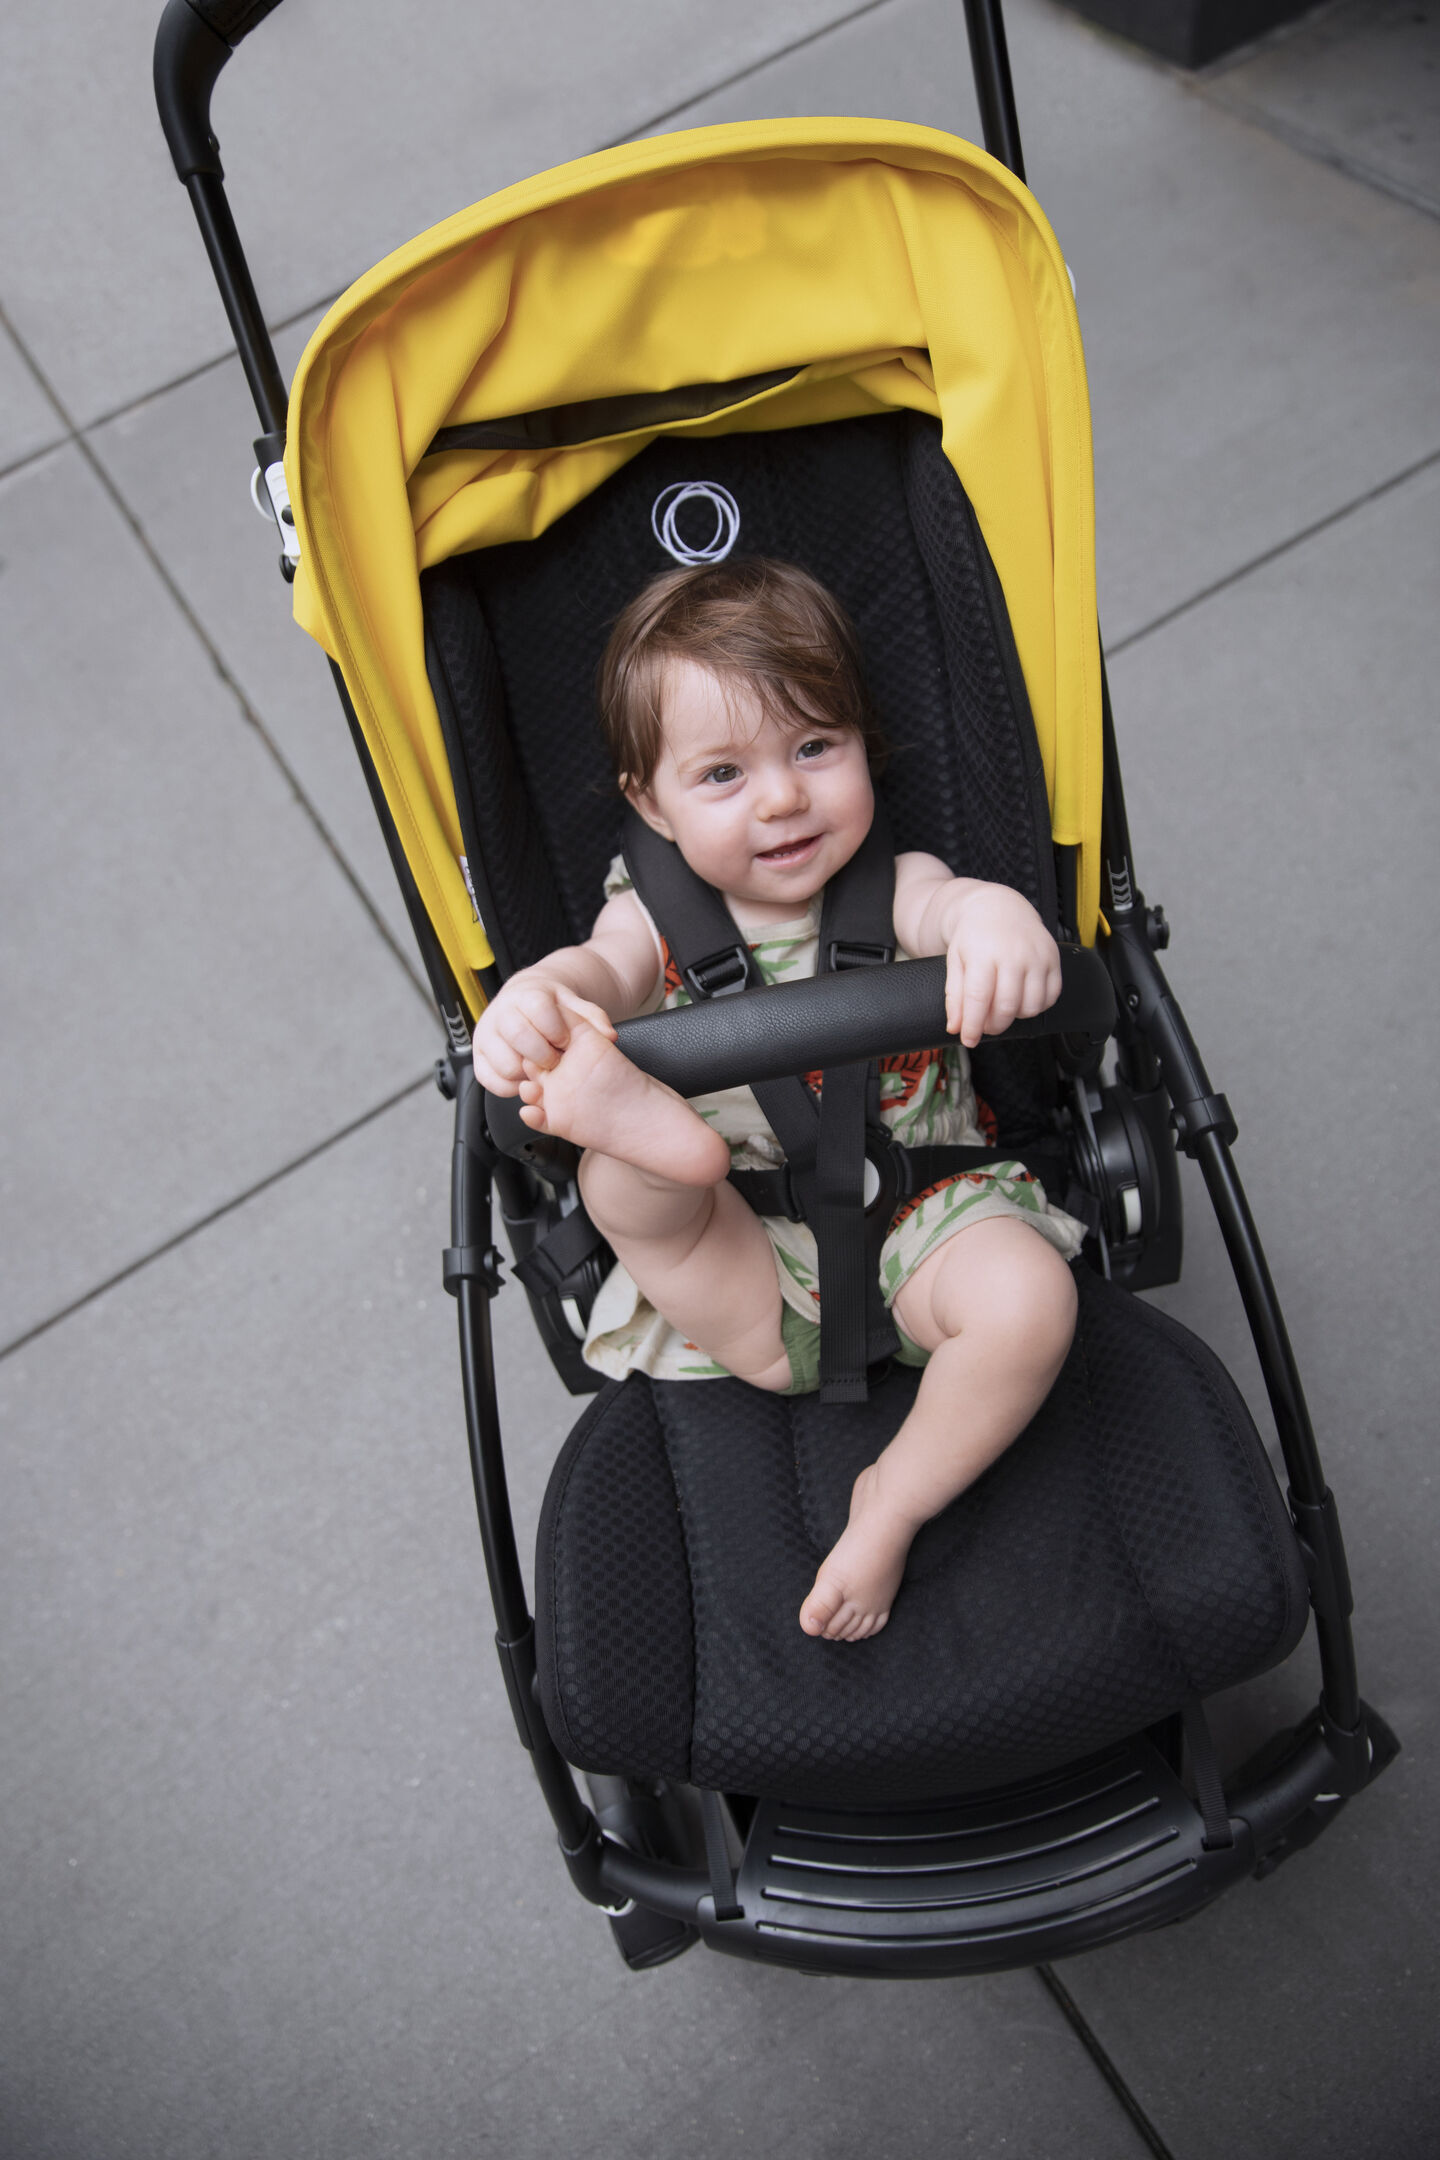 A child sitting in their Bugaboo Bee 6 stroller featuring a yellow sun canopy. Bugaboo newborn stroller accessories highlight.